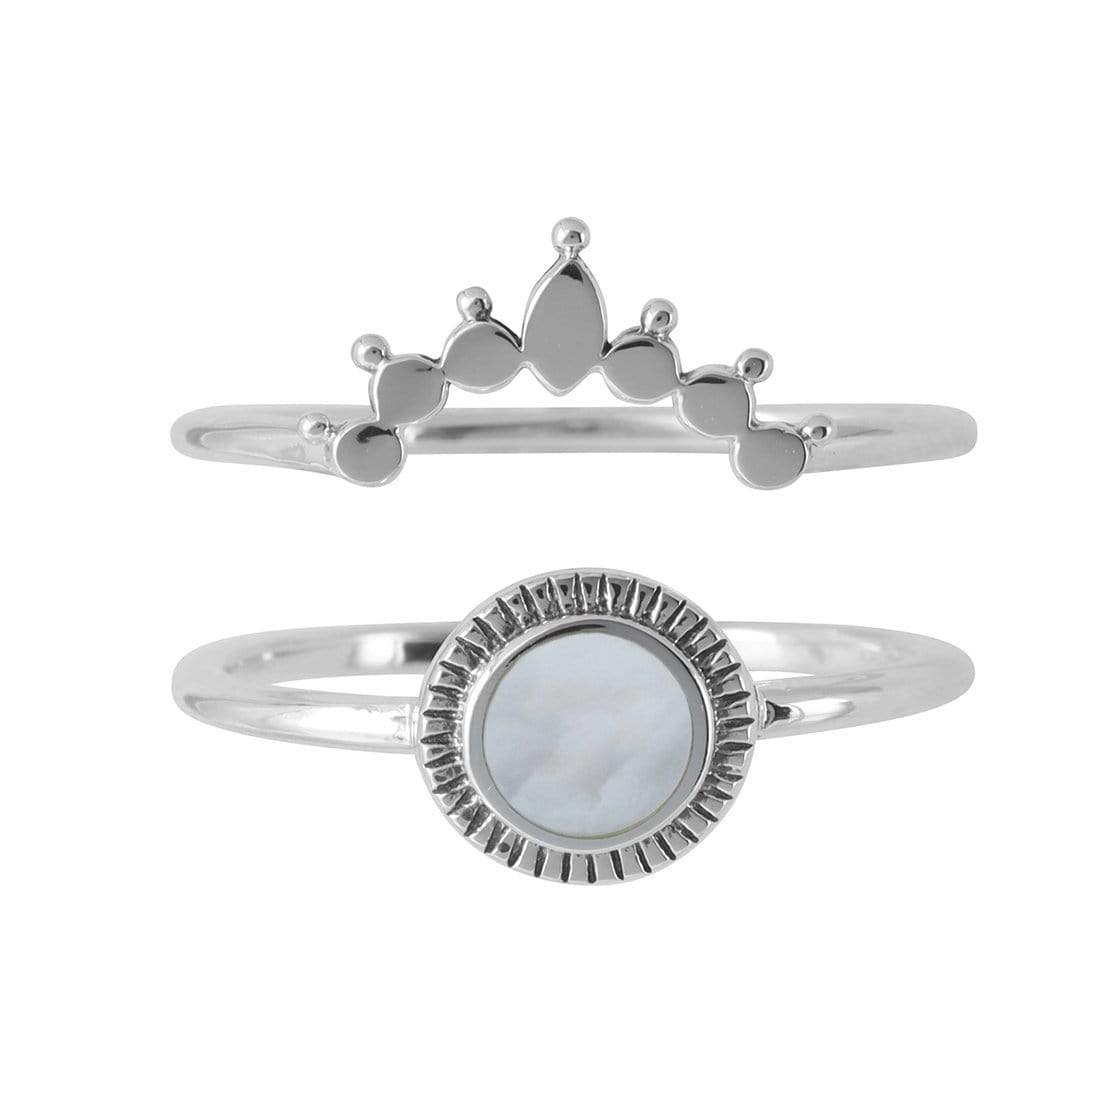 Midsummer Star Ring Ascendant Rising Pearl Ring Set